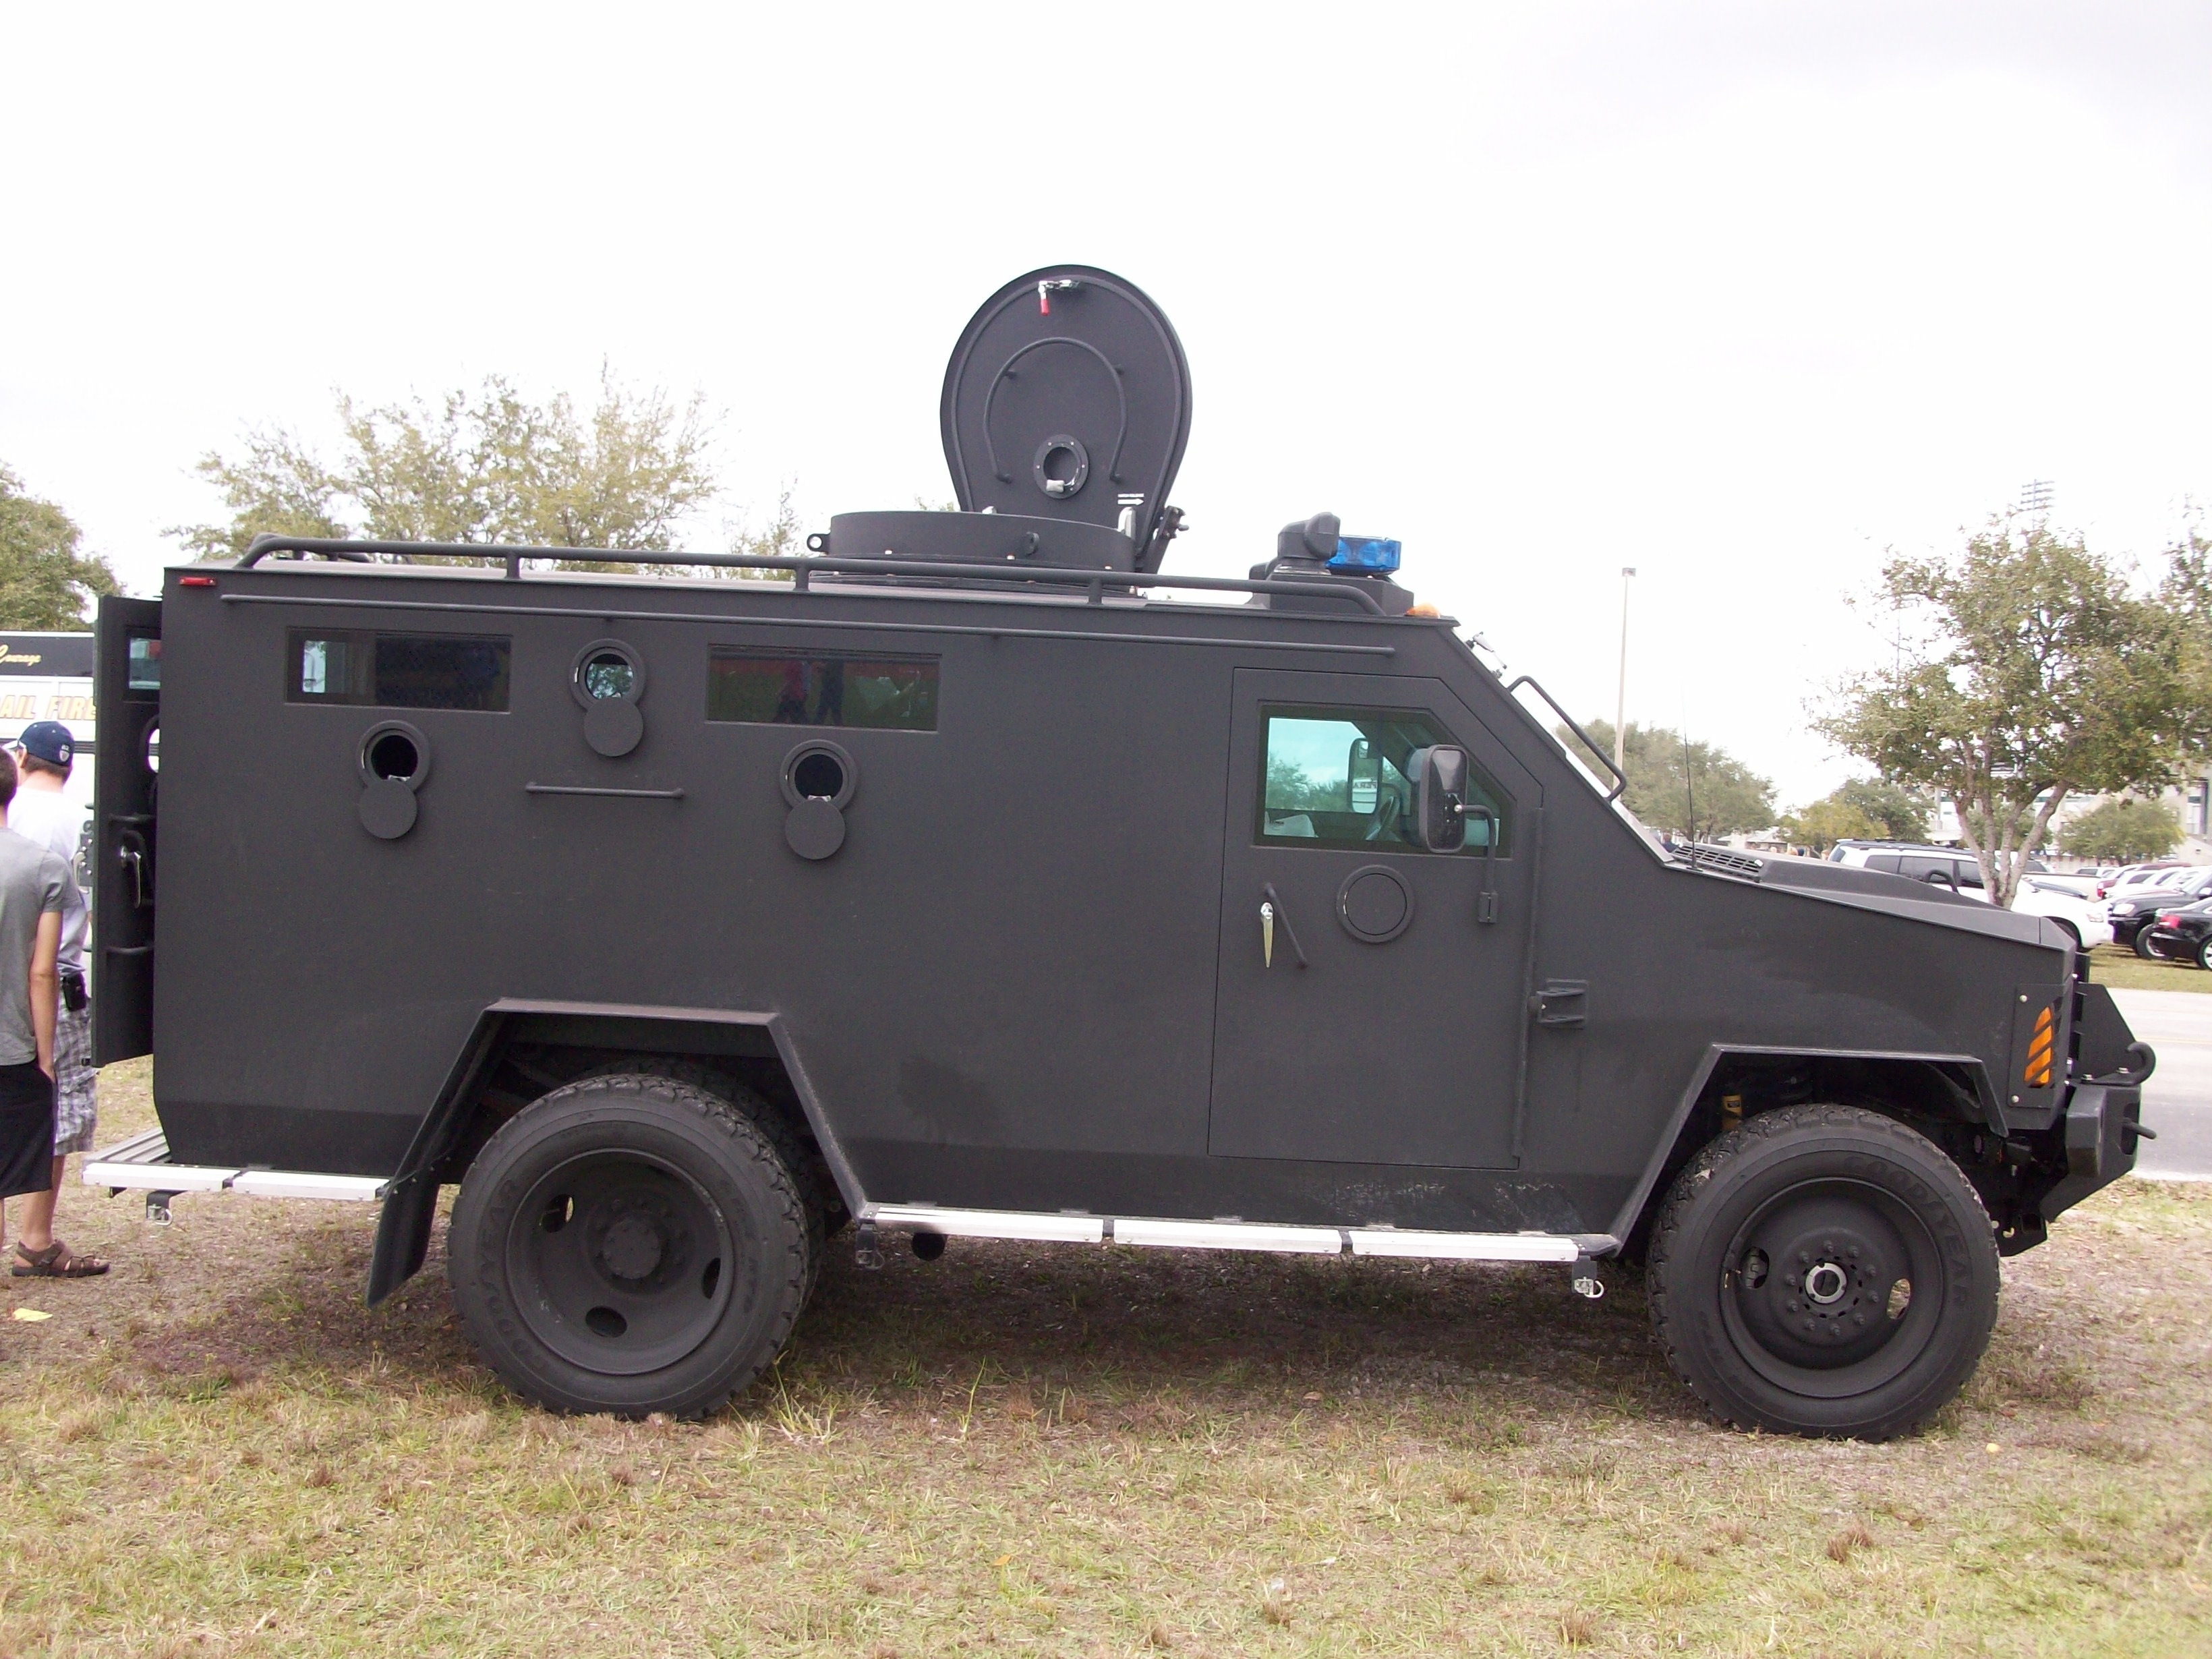 Bearcat Swat Vehicle